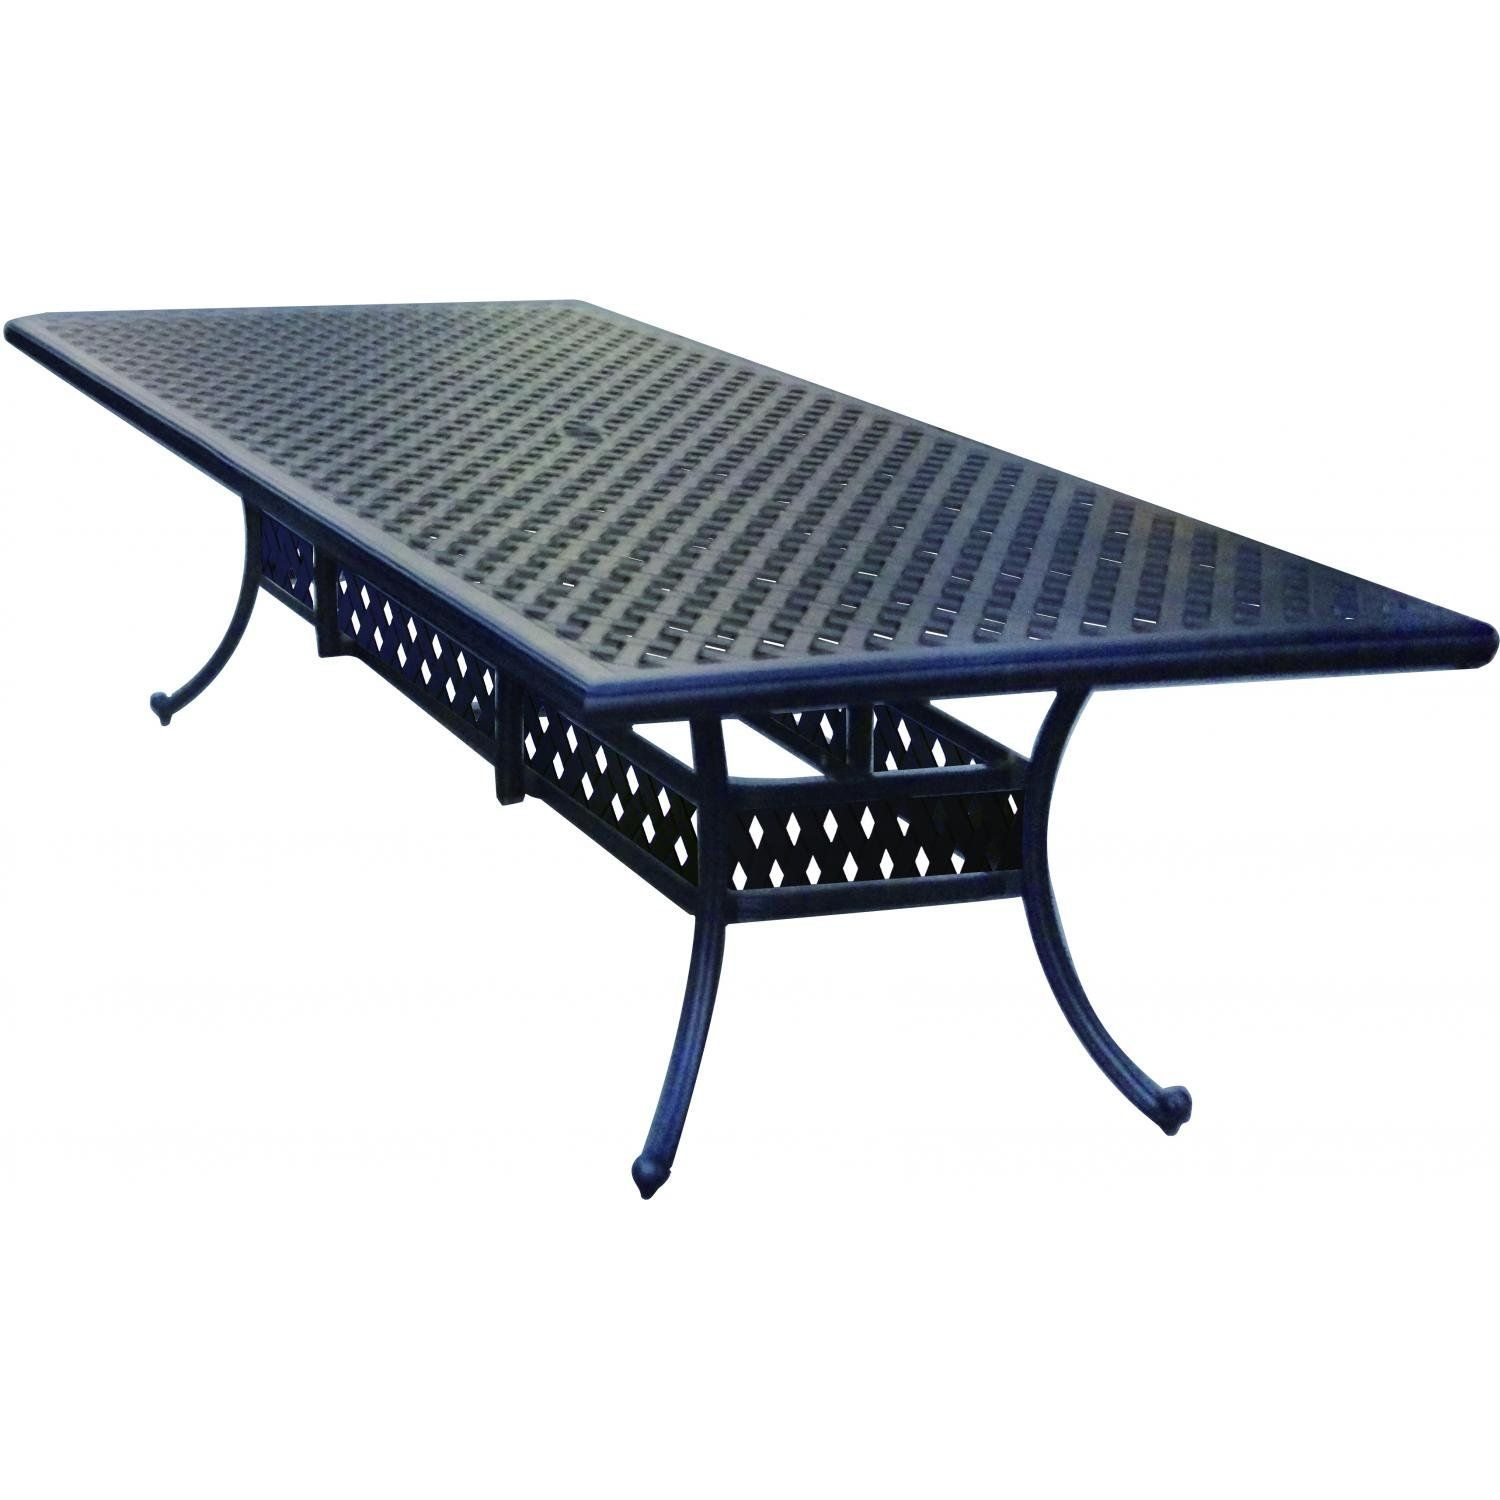 120 Inch Dining Table popo